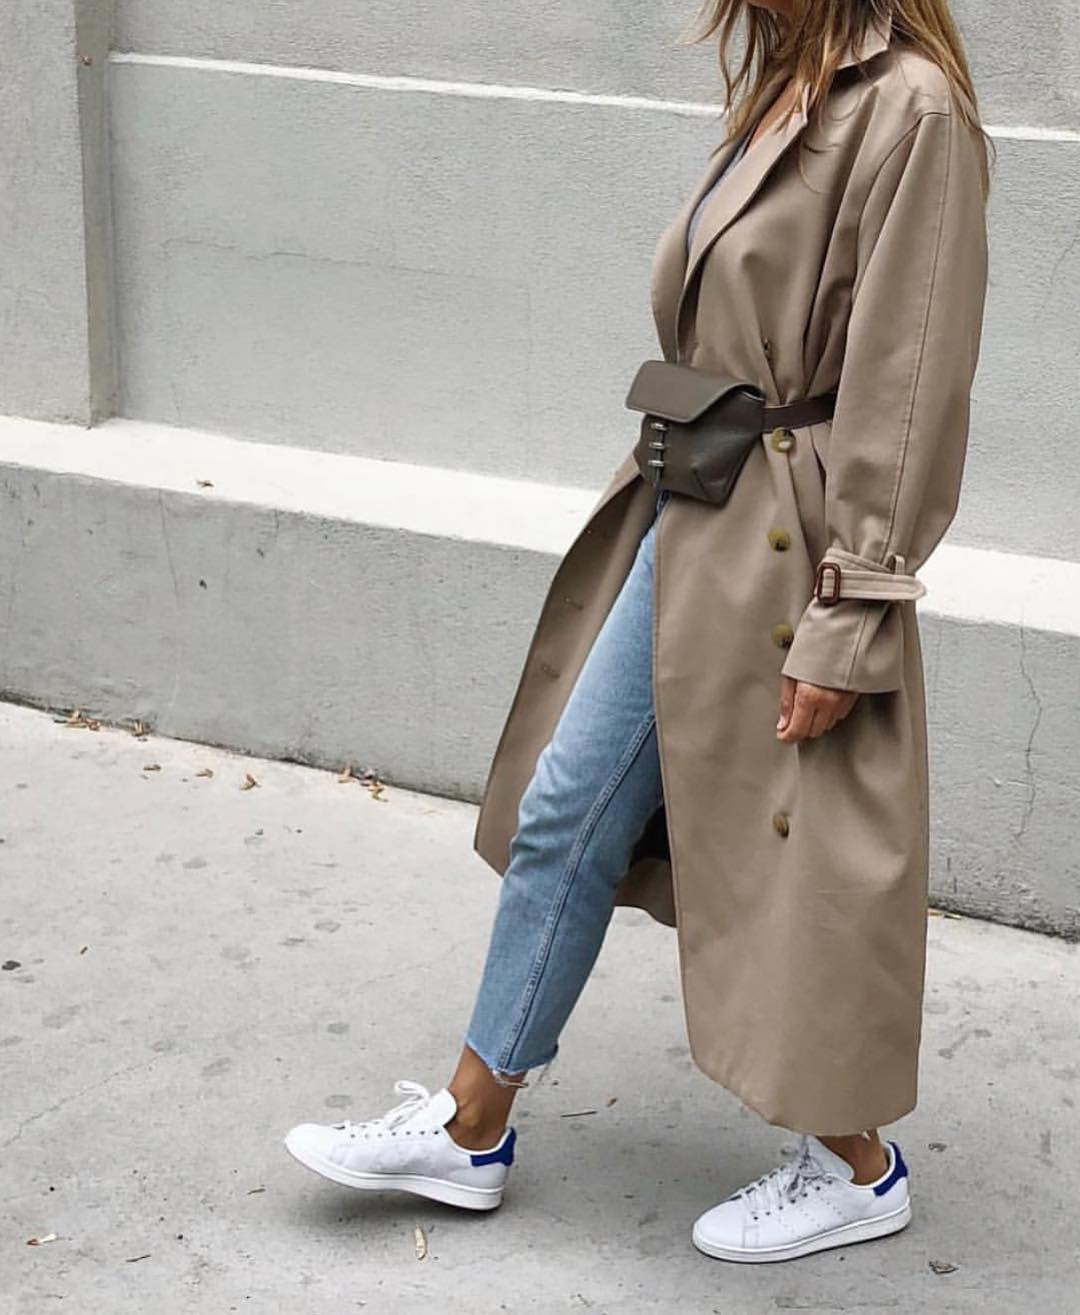 Cream-Grey Oversized Long Coat With Belted Bag, Jeans And White Kicks For Fall 2020